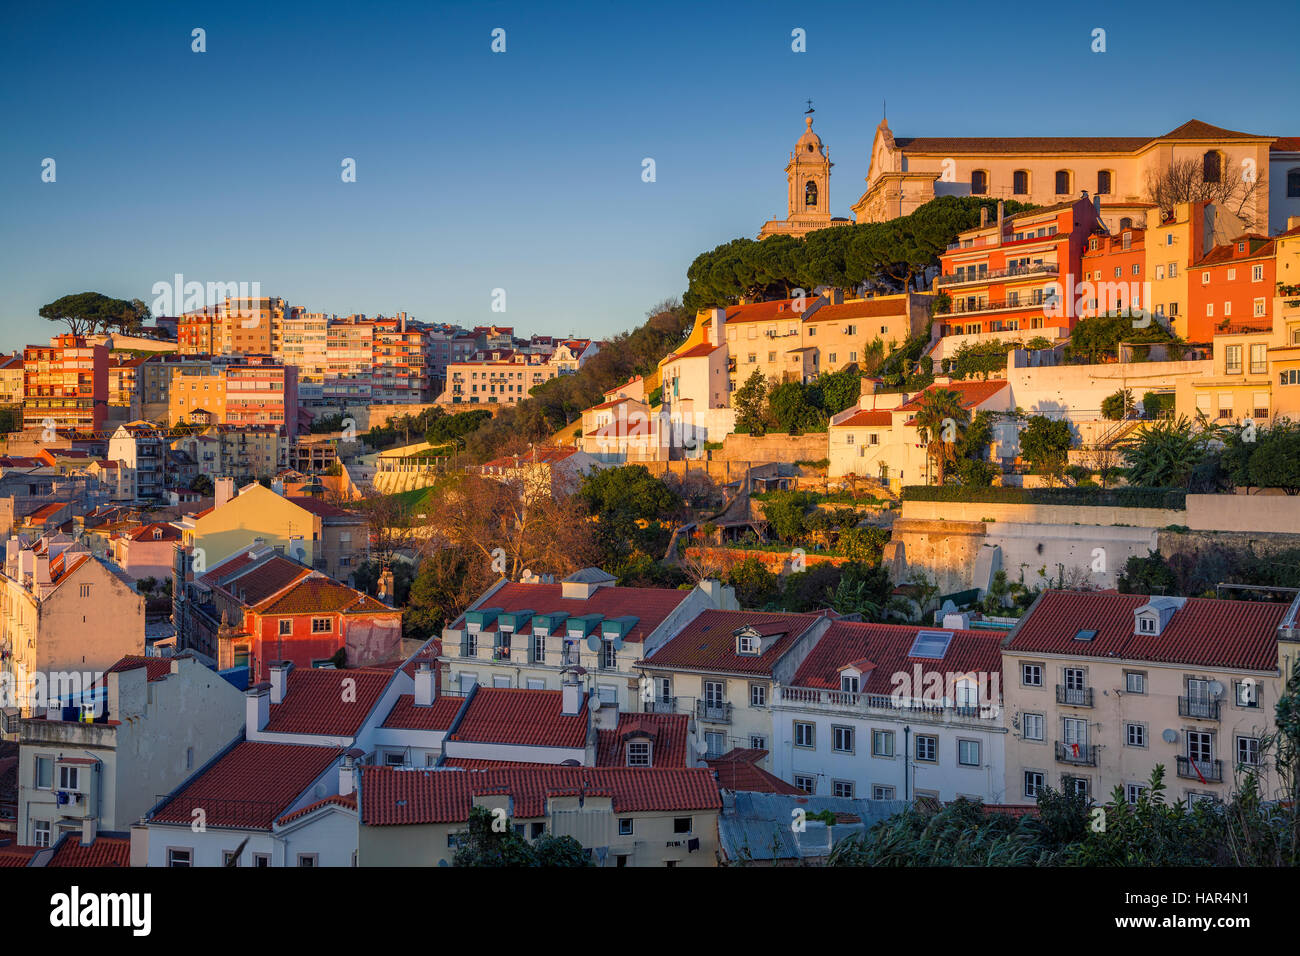 Lisbon. Image of Lisbon, Portugal during golden hour. - Stock Image